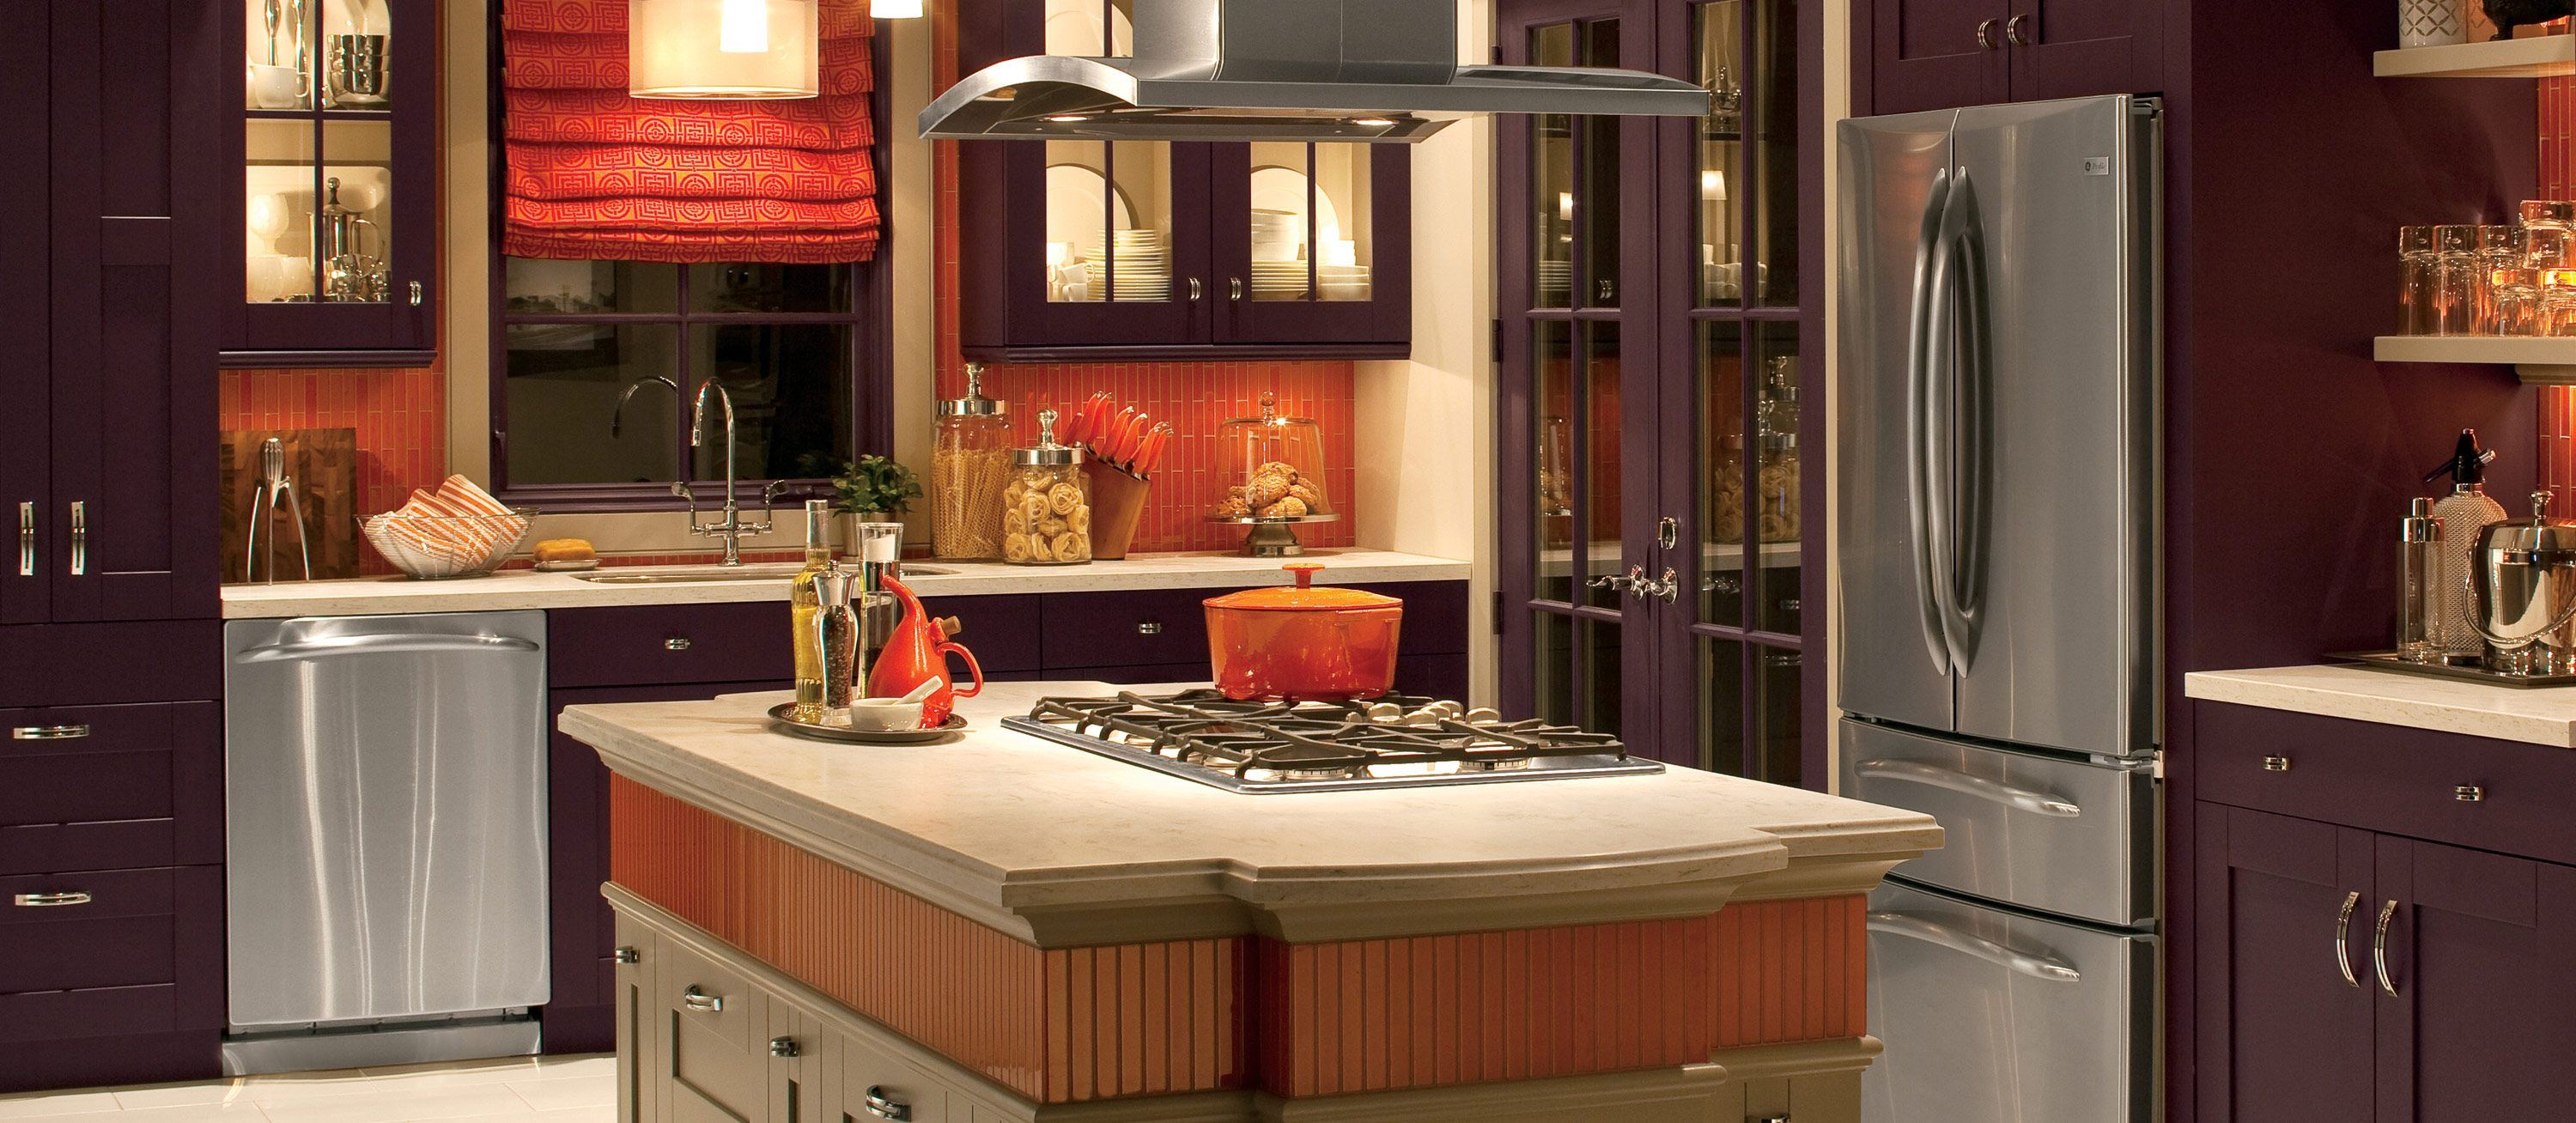 Creating A Kitchen For Entertaining: Thanksgiving Colors Abound In This Kitchen! This Kitchen